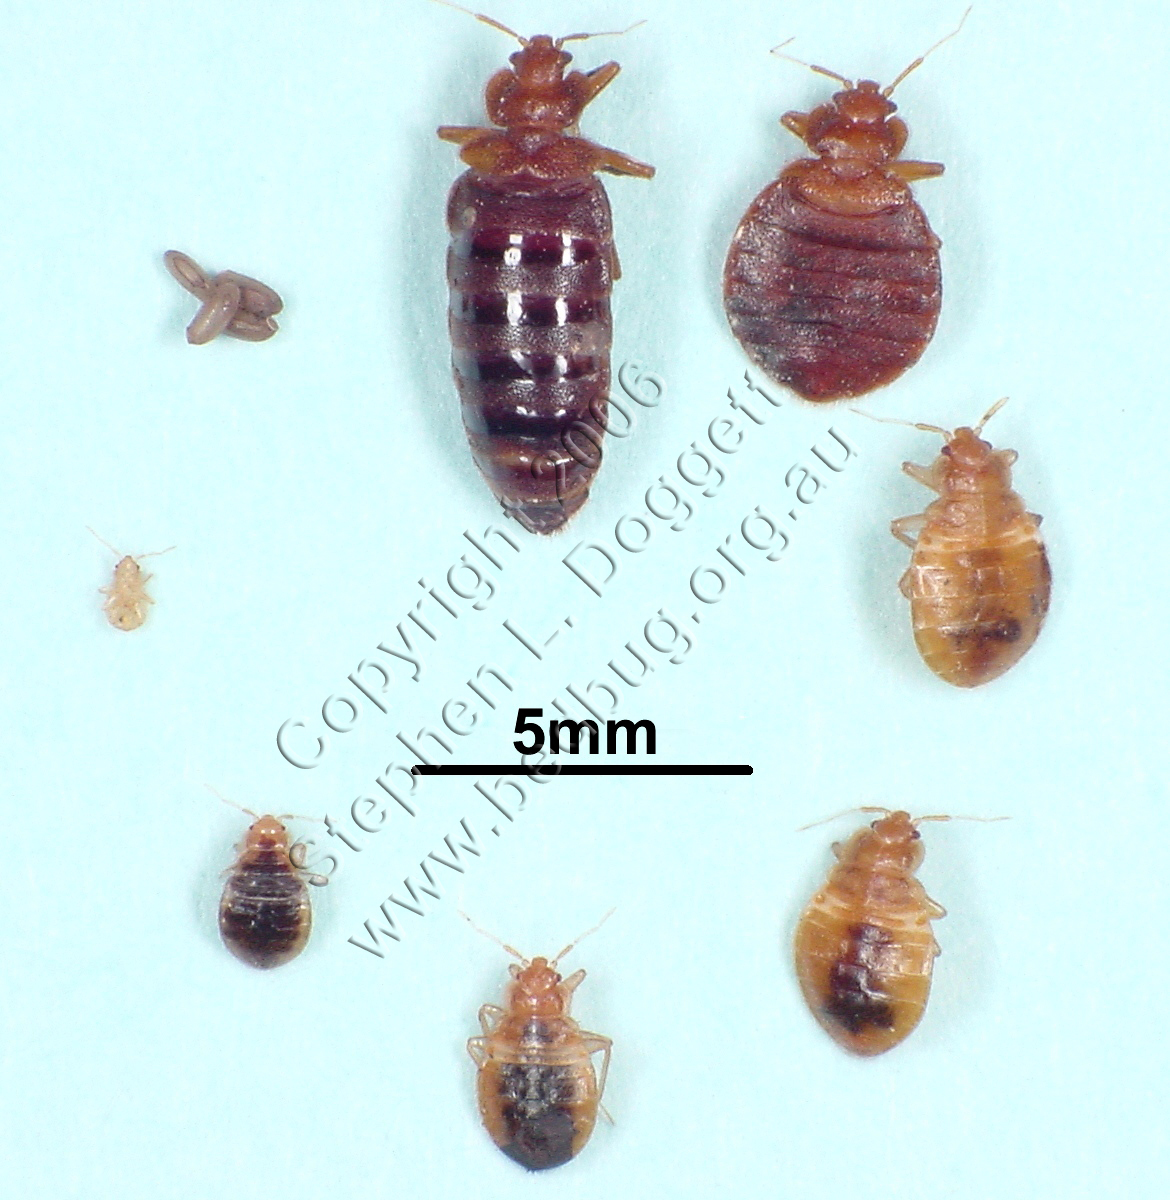 How To Prepare For Bedbug Treatment